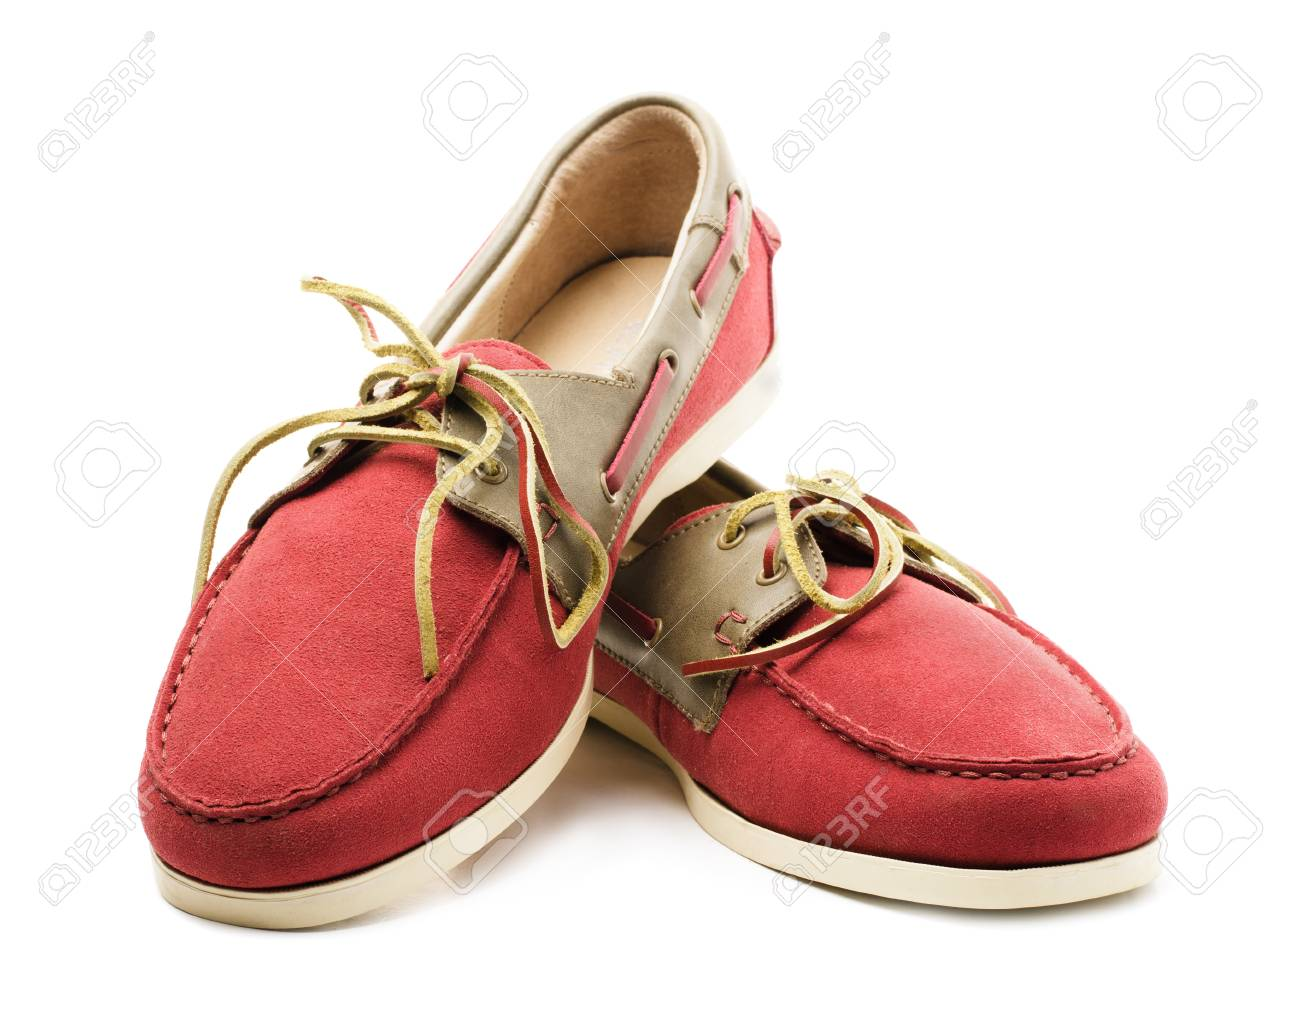 Top Sider Shoes Or Boat Shoes Isolated